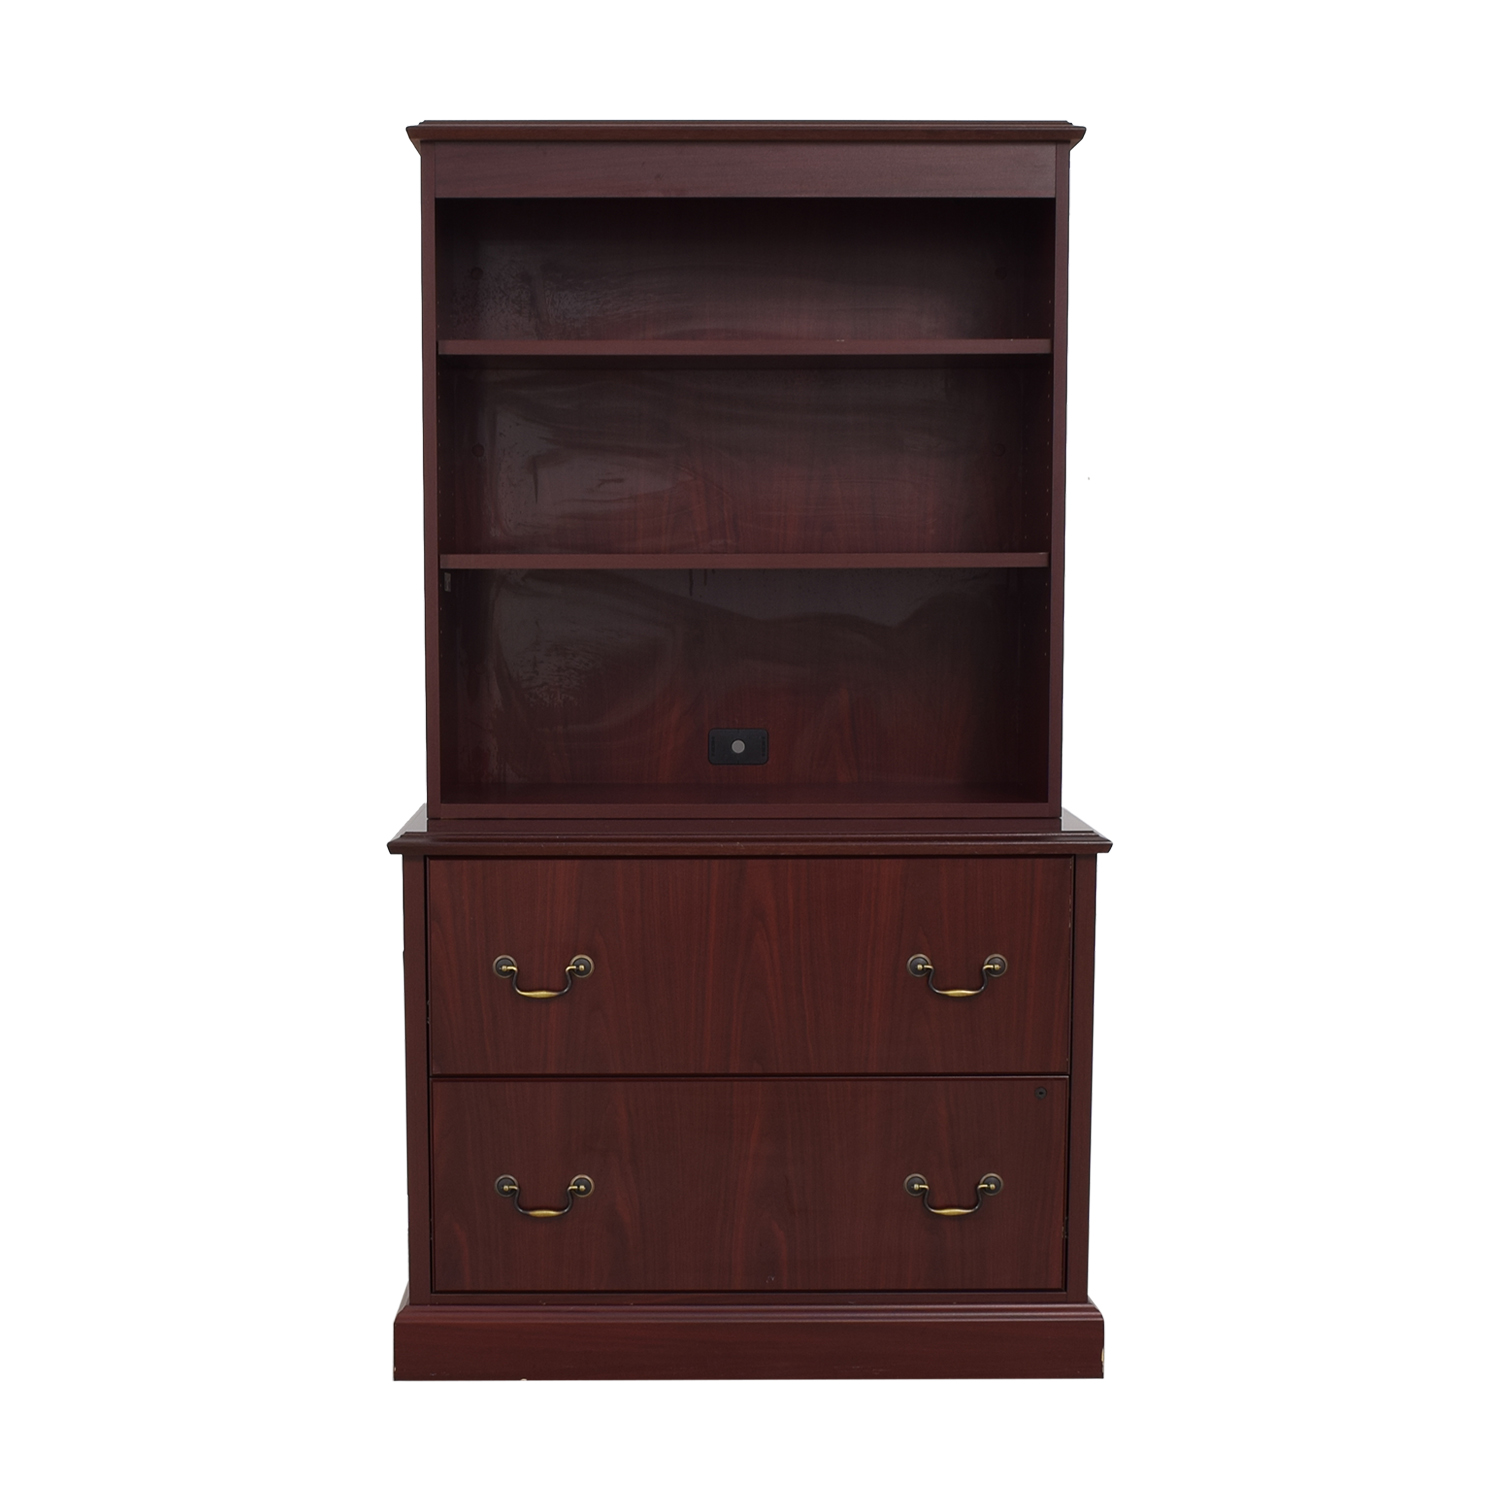 Hon HON Furniture Filing Cabinet with Book Shelf dimensions